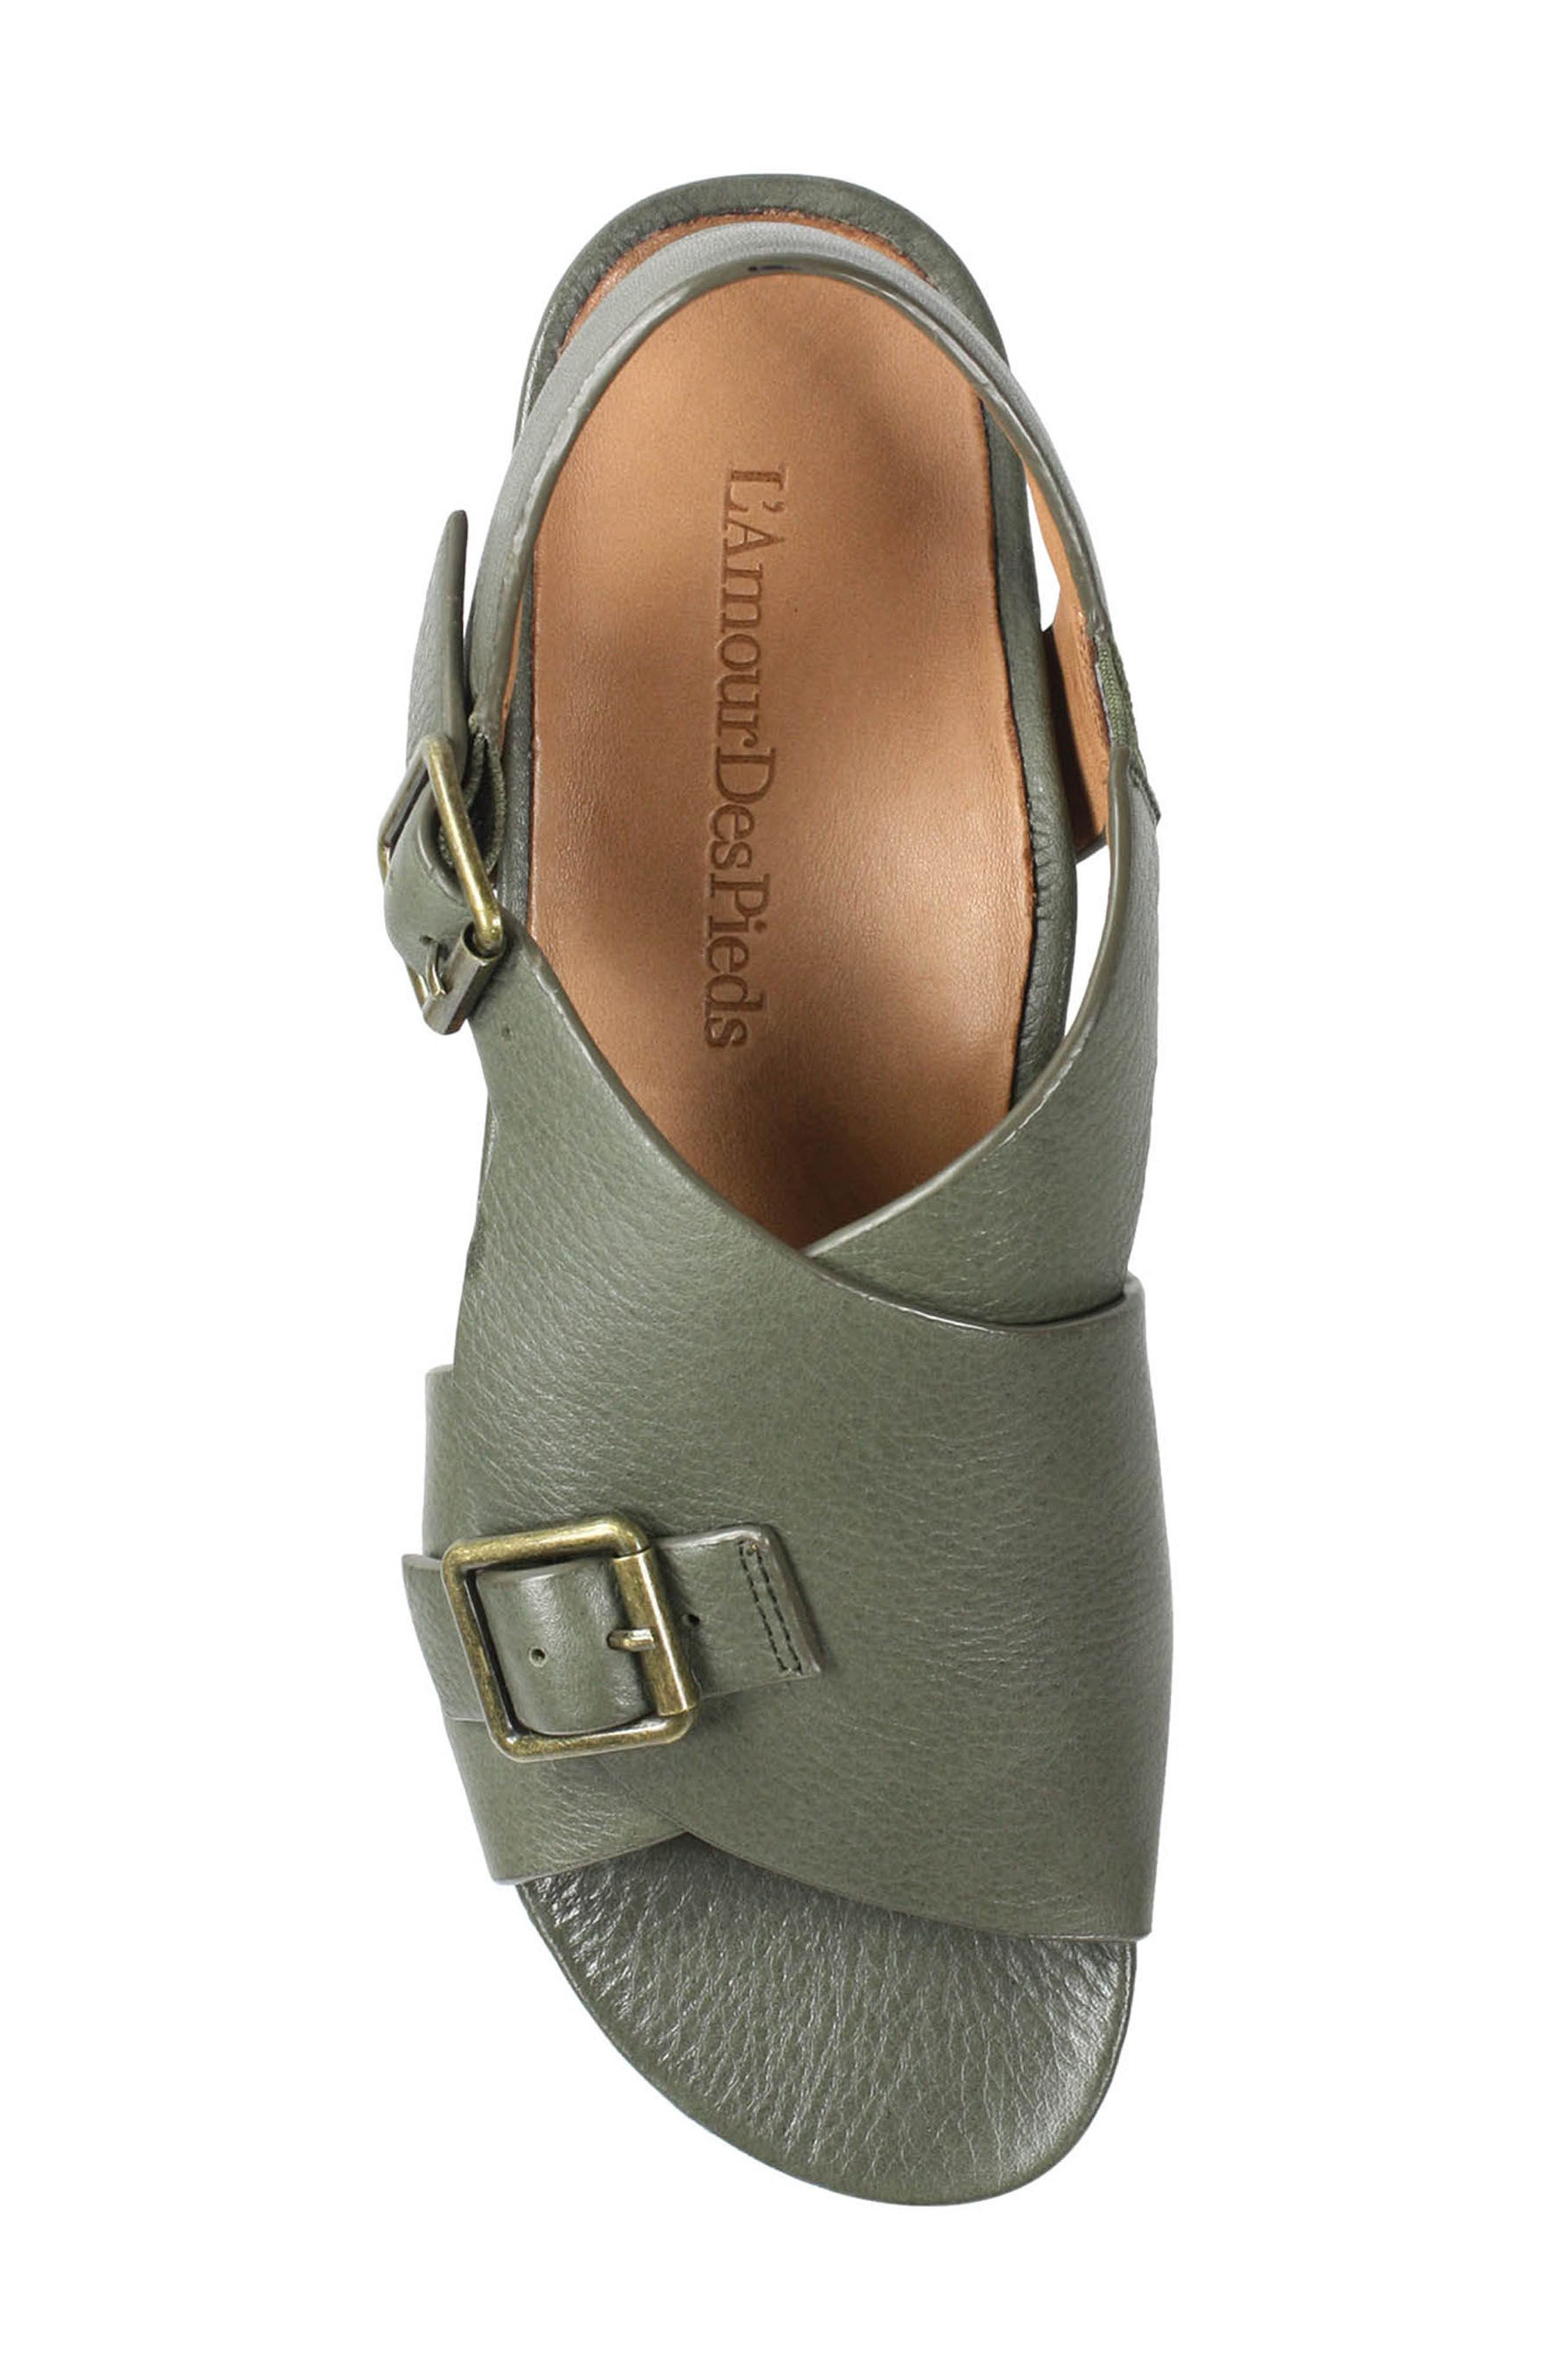 Dordogne Sandal,                             Alternate thumbnail 5, color,                             Olive Leather